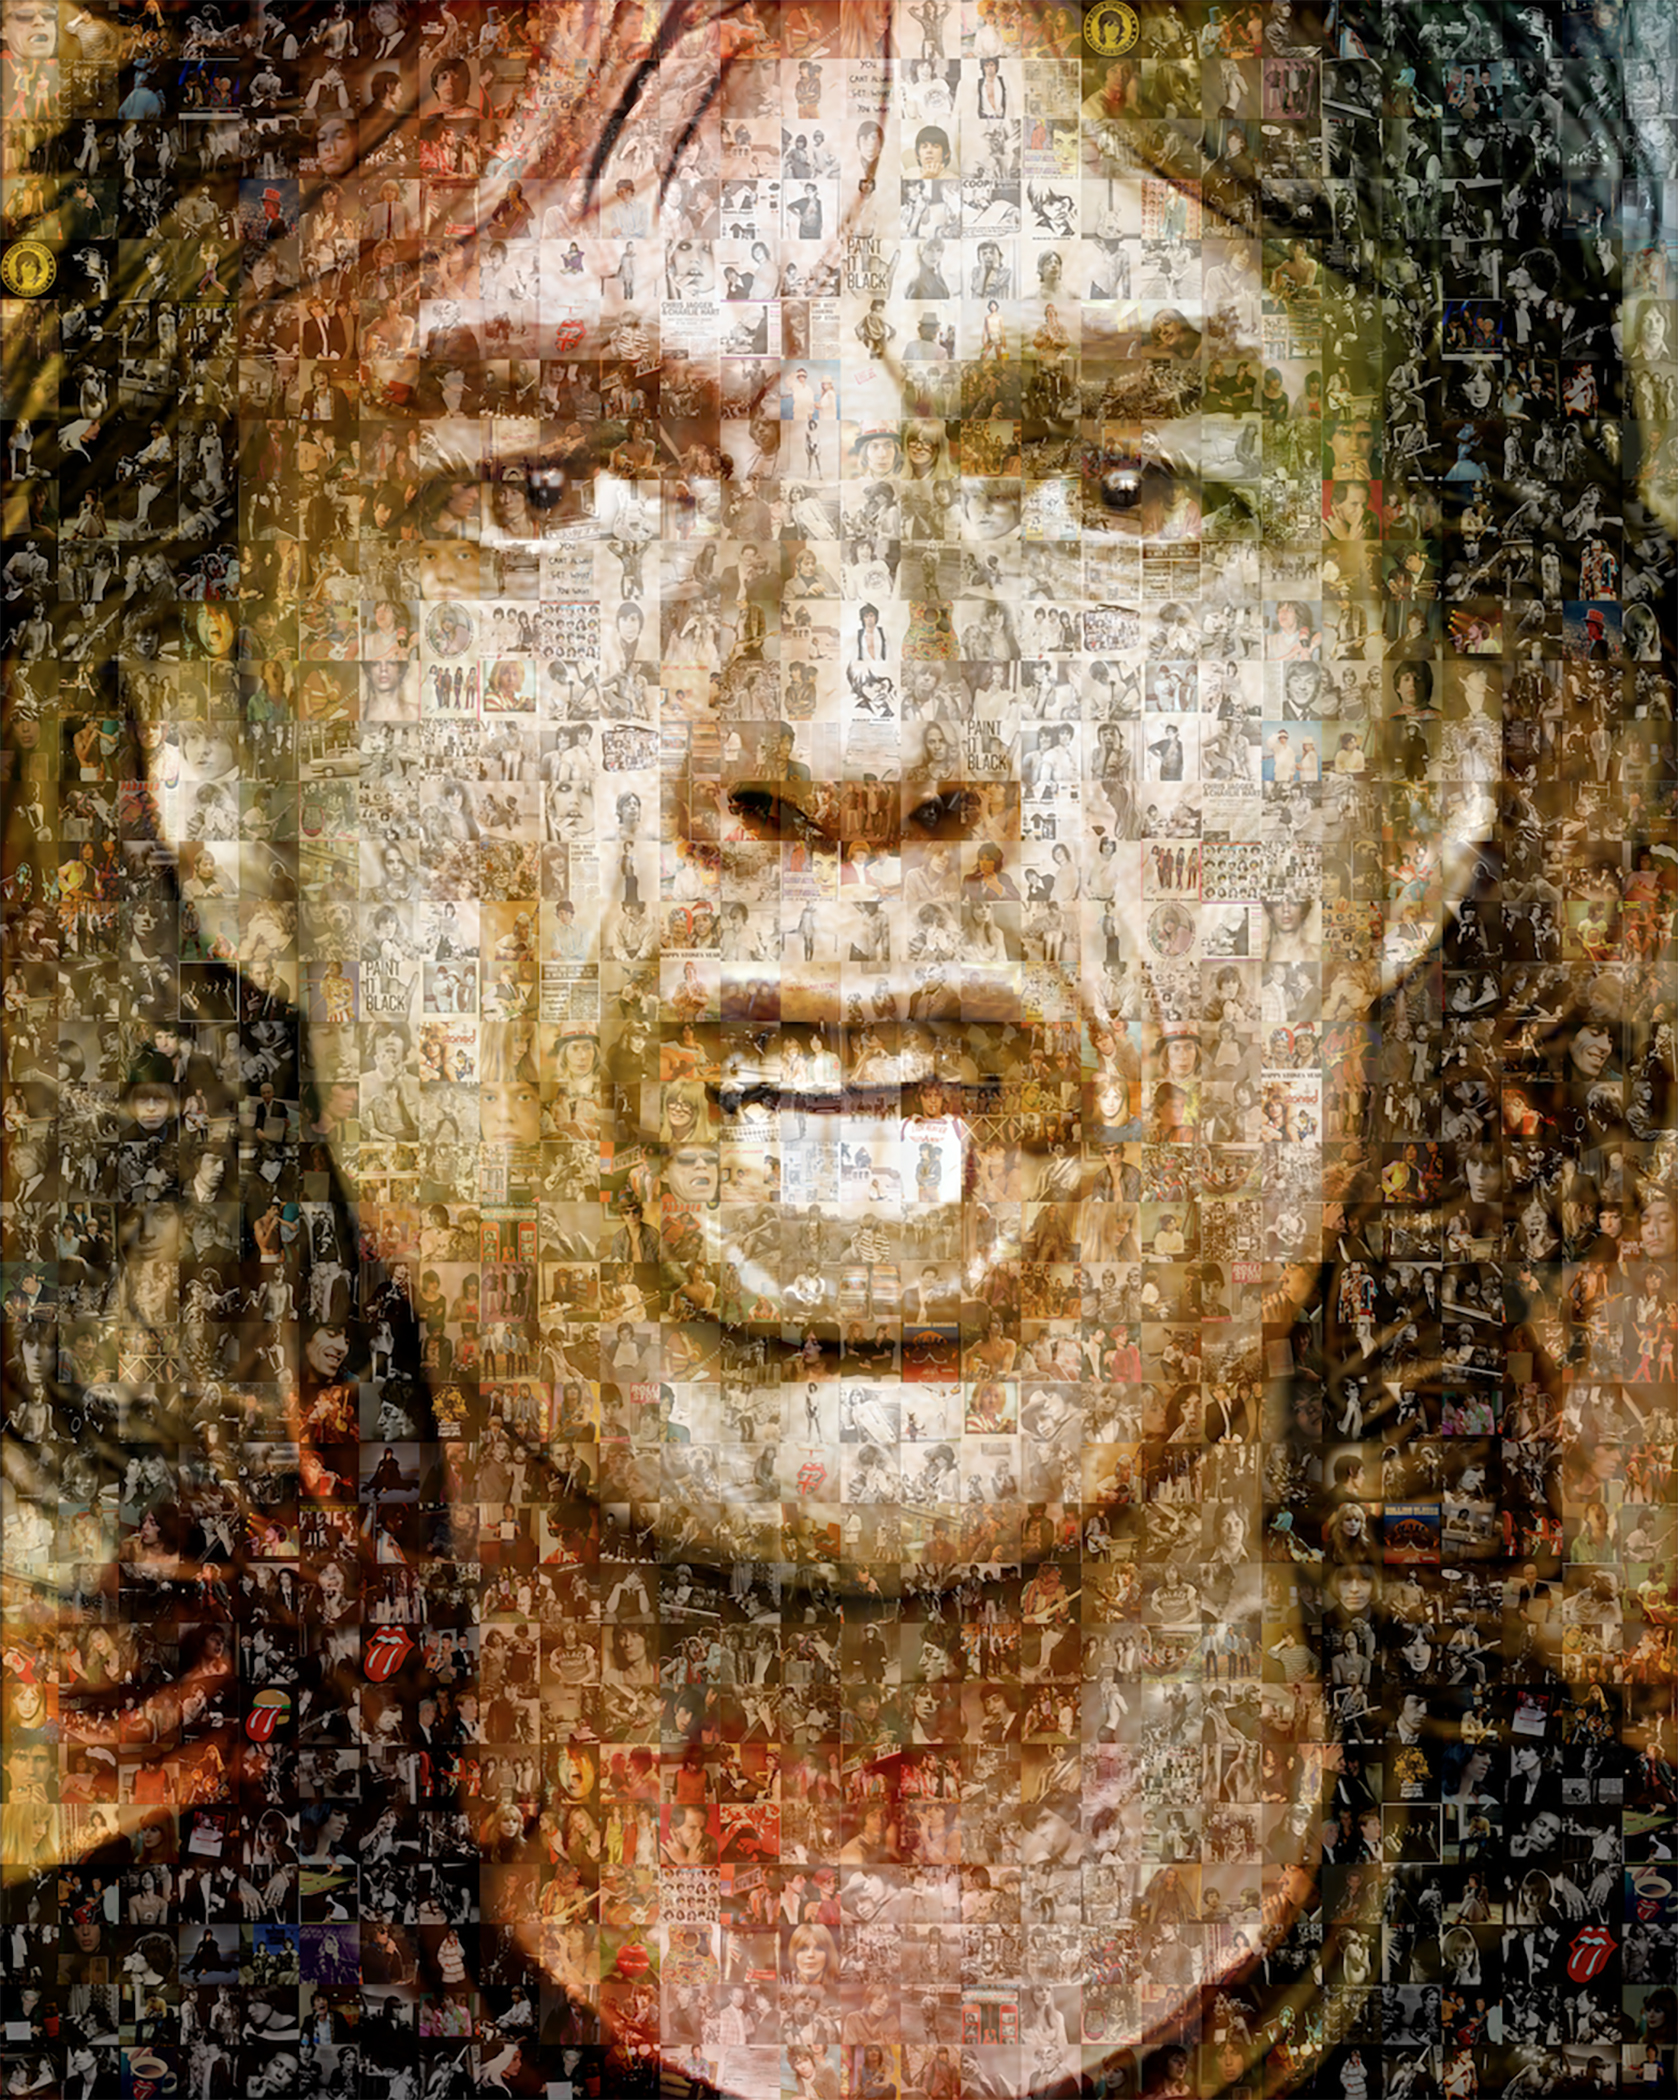 Mick Jagger - Your Majesty